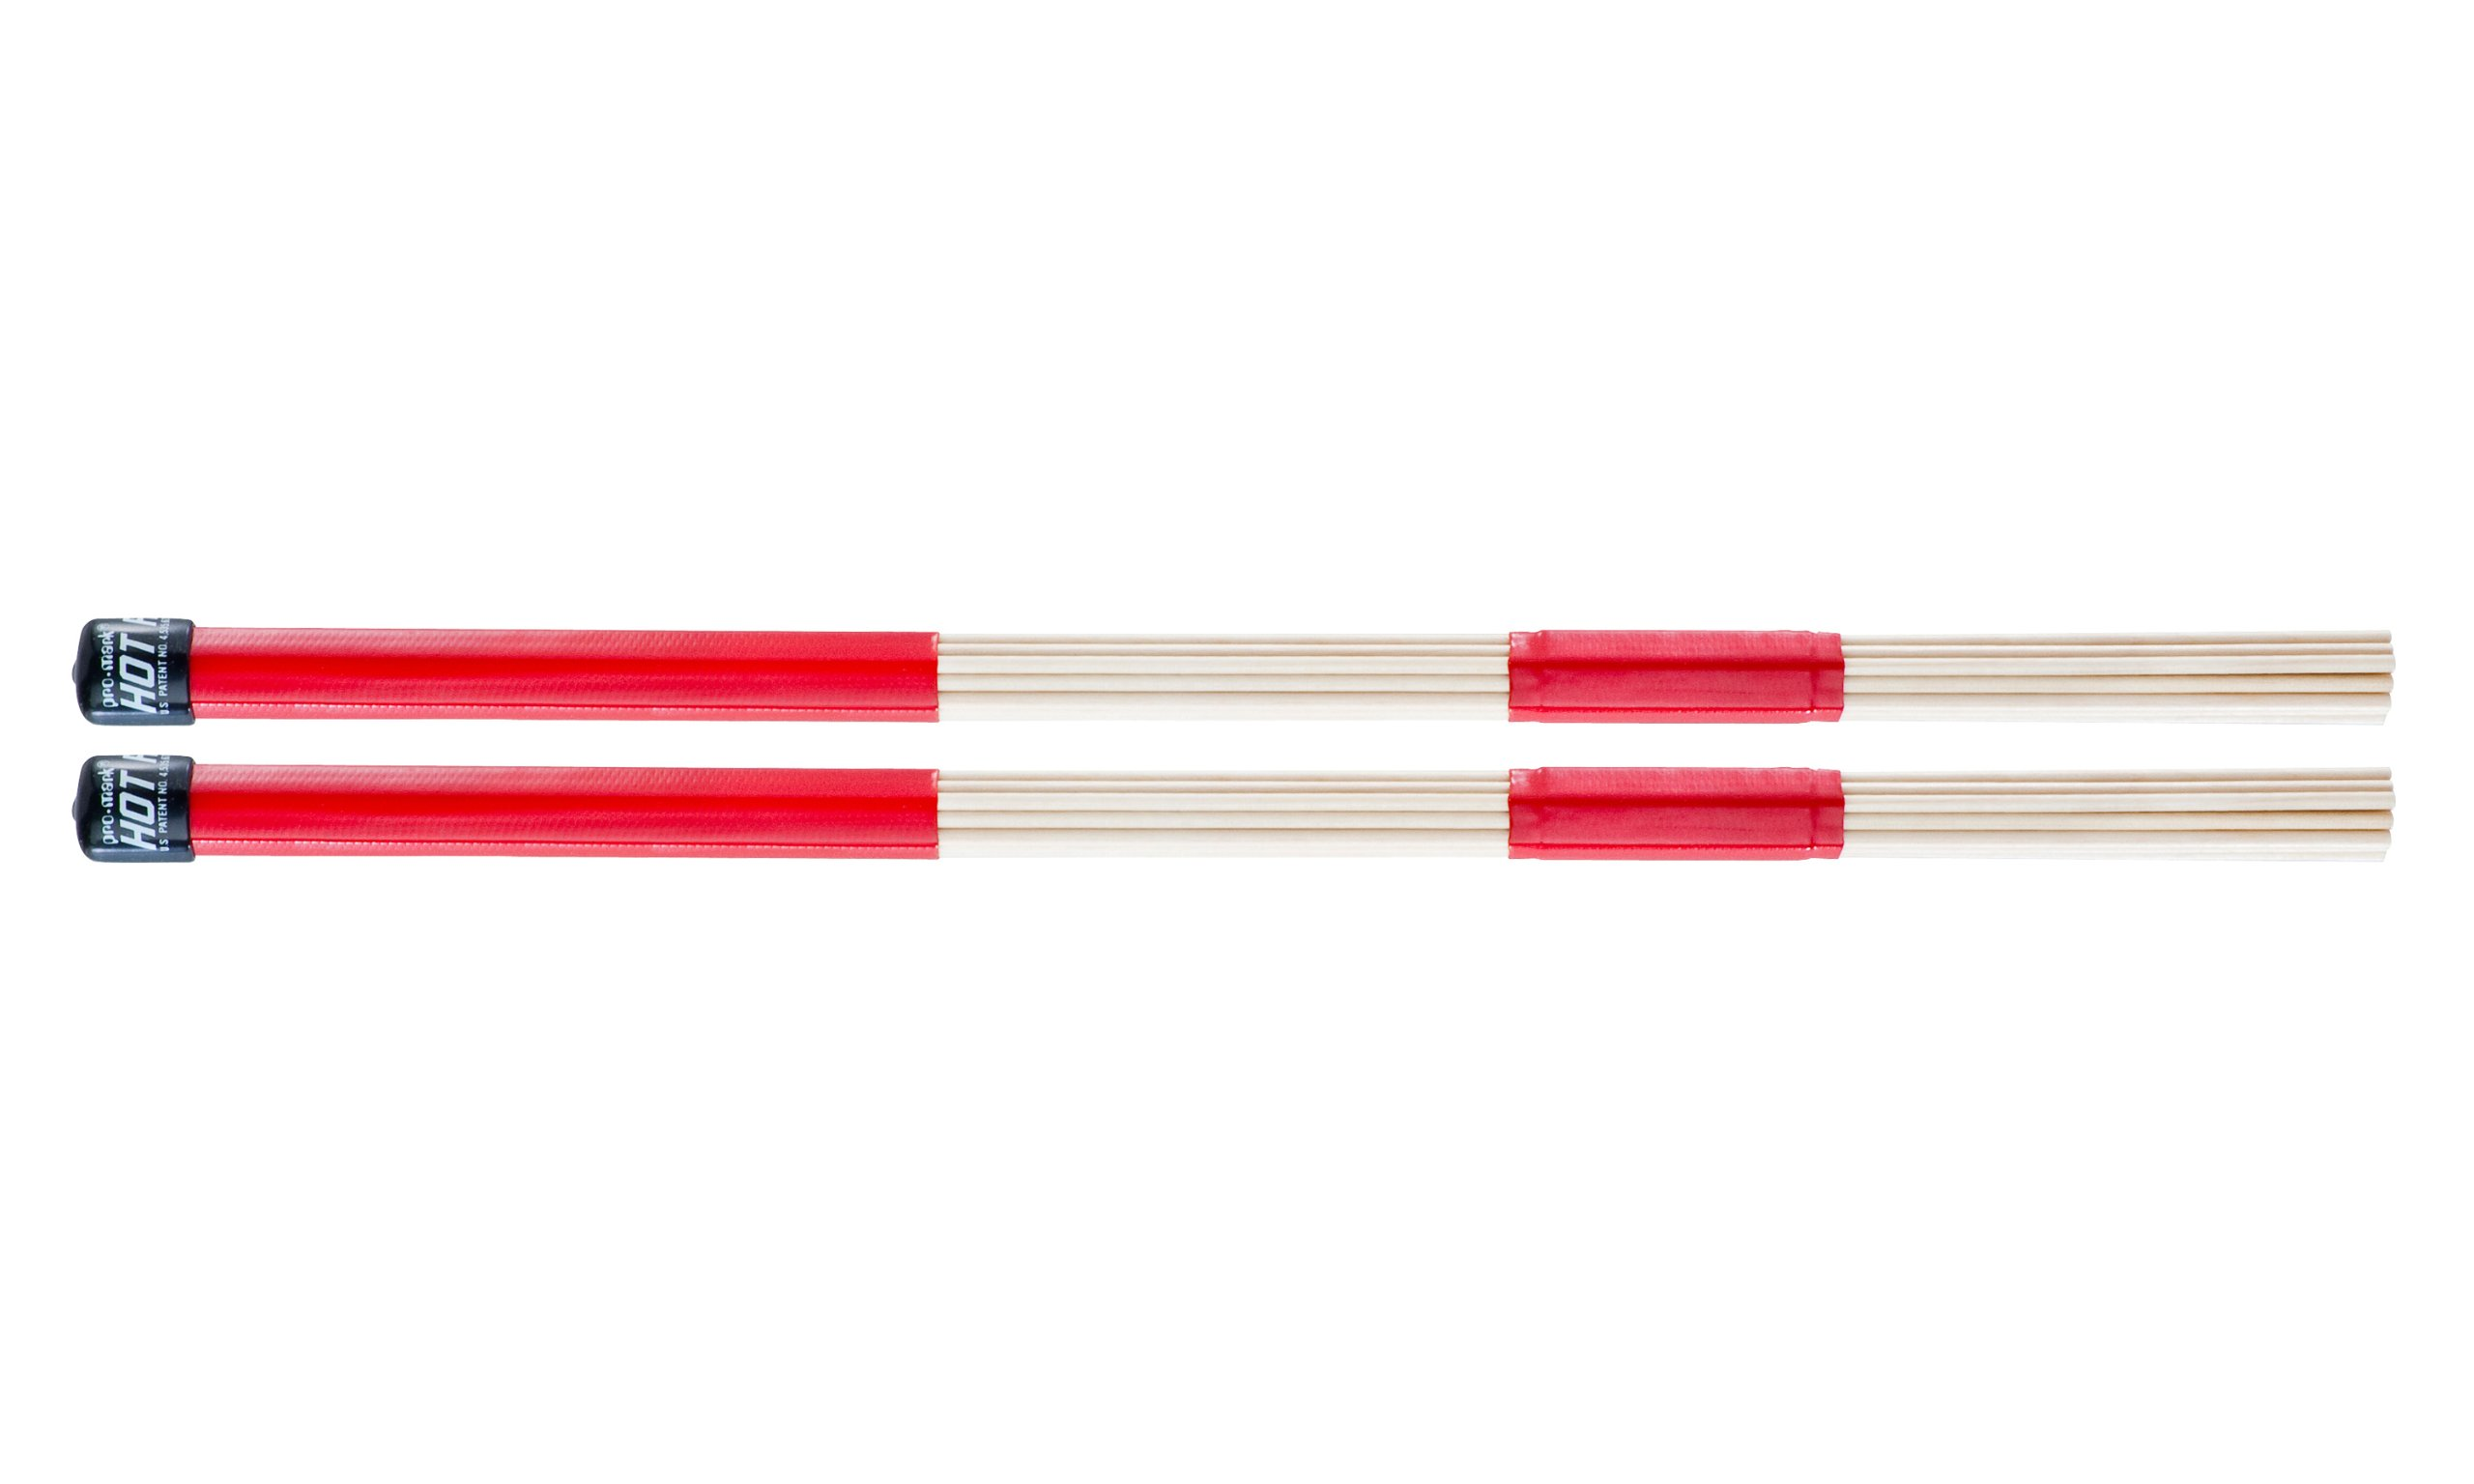 """Promark H-RODS Hot Rods Drumsticks (1 Pair) – Smooth Grip for Easy Playability – Constructed of 19 Birch Dowels – Perfect for Small Venue and Acoustic Performances, .550"""" Diameter, 16"""" Long"""